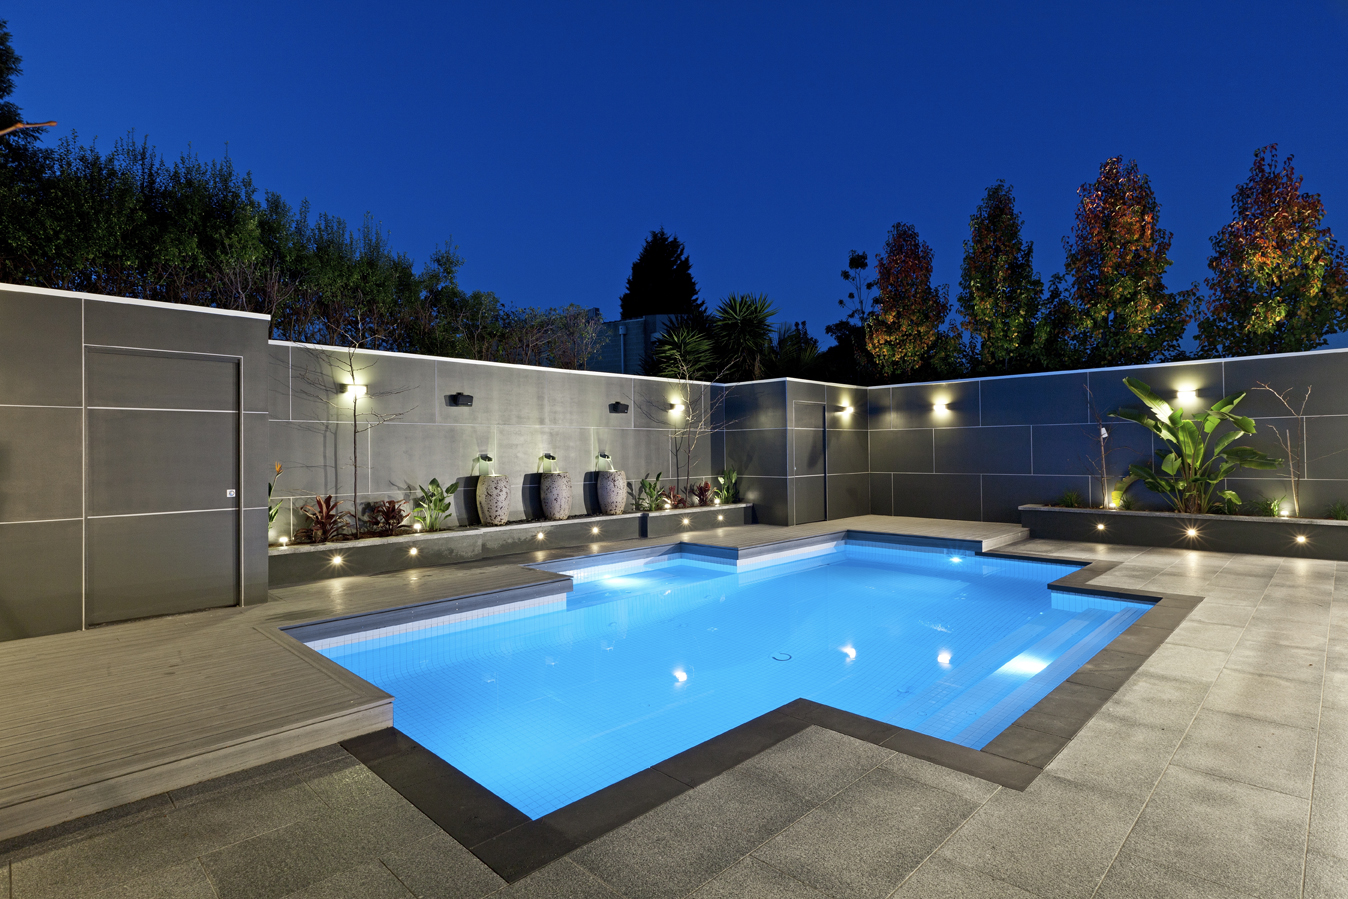 backyard landscaping ideas swimming pool design. Black Bedroom Furniture Sets. Home Design Ideas